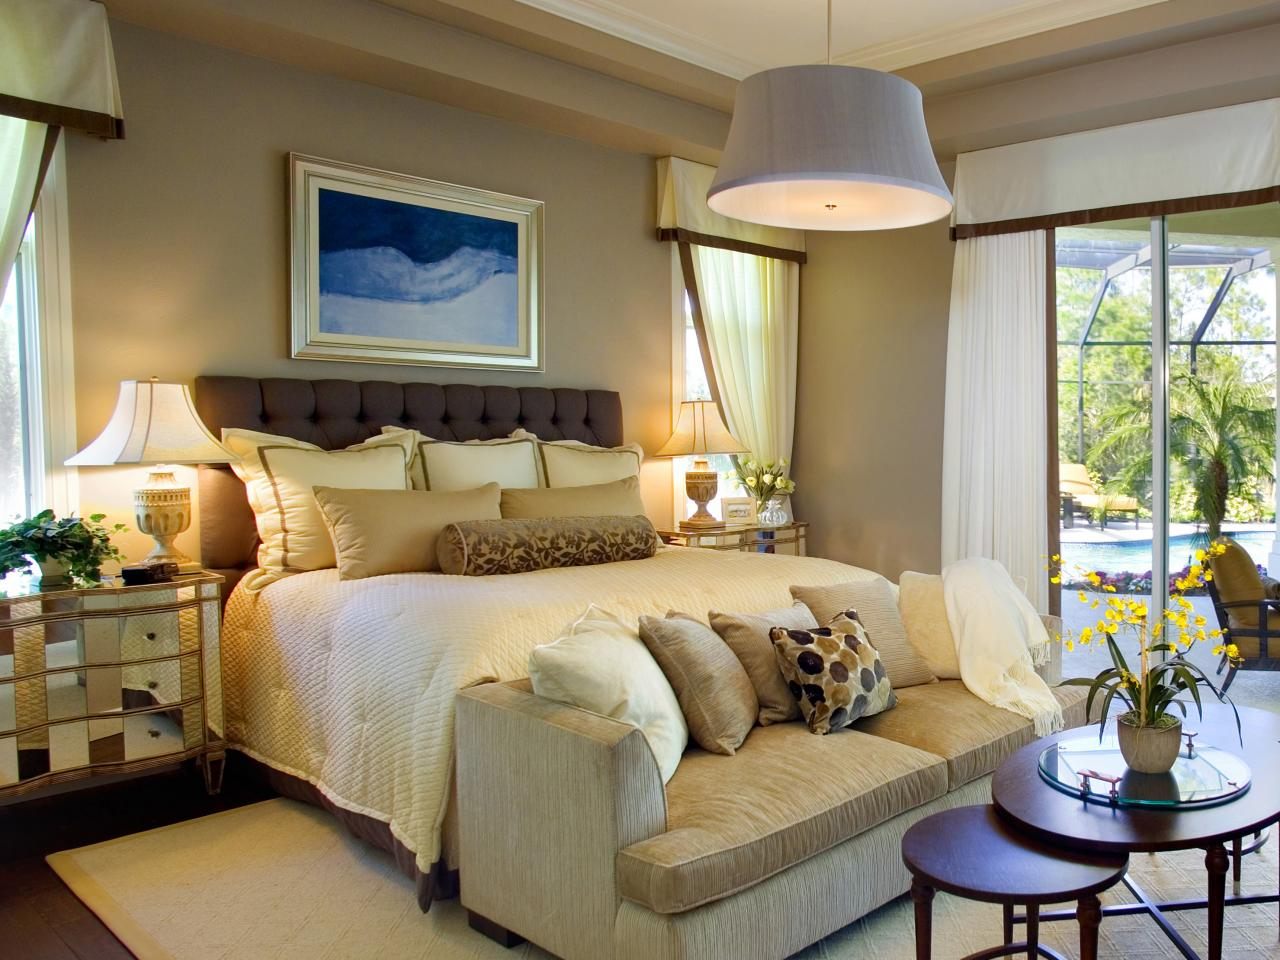 10 Warm Neutral Headboards Bedrooms Bedroom Decorating Ideas Hgtv